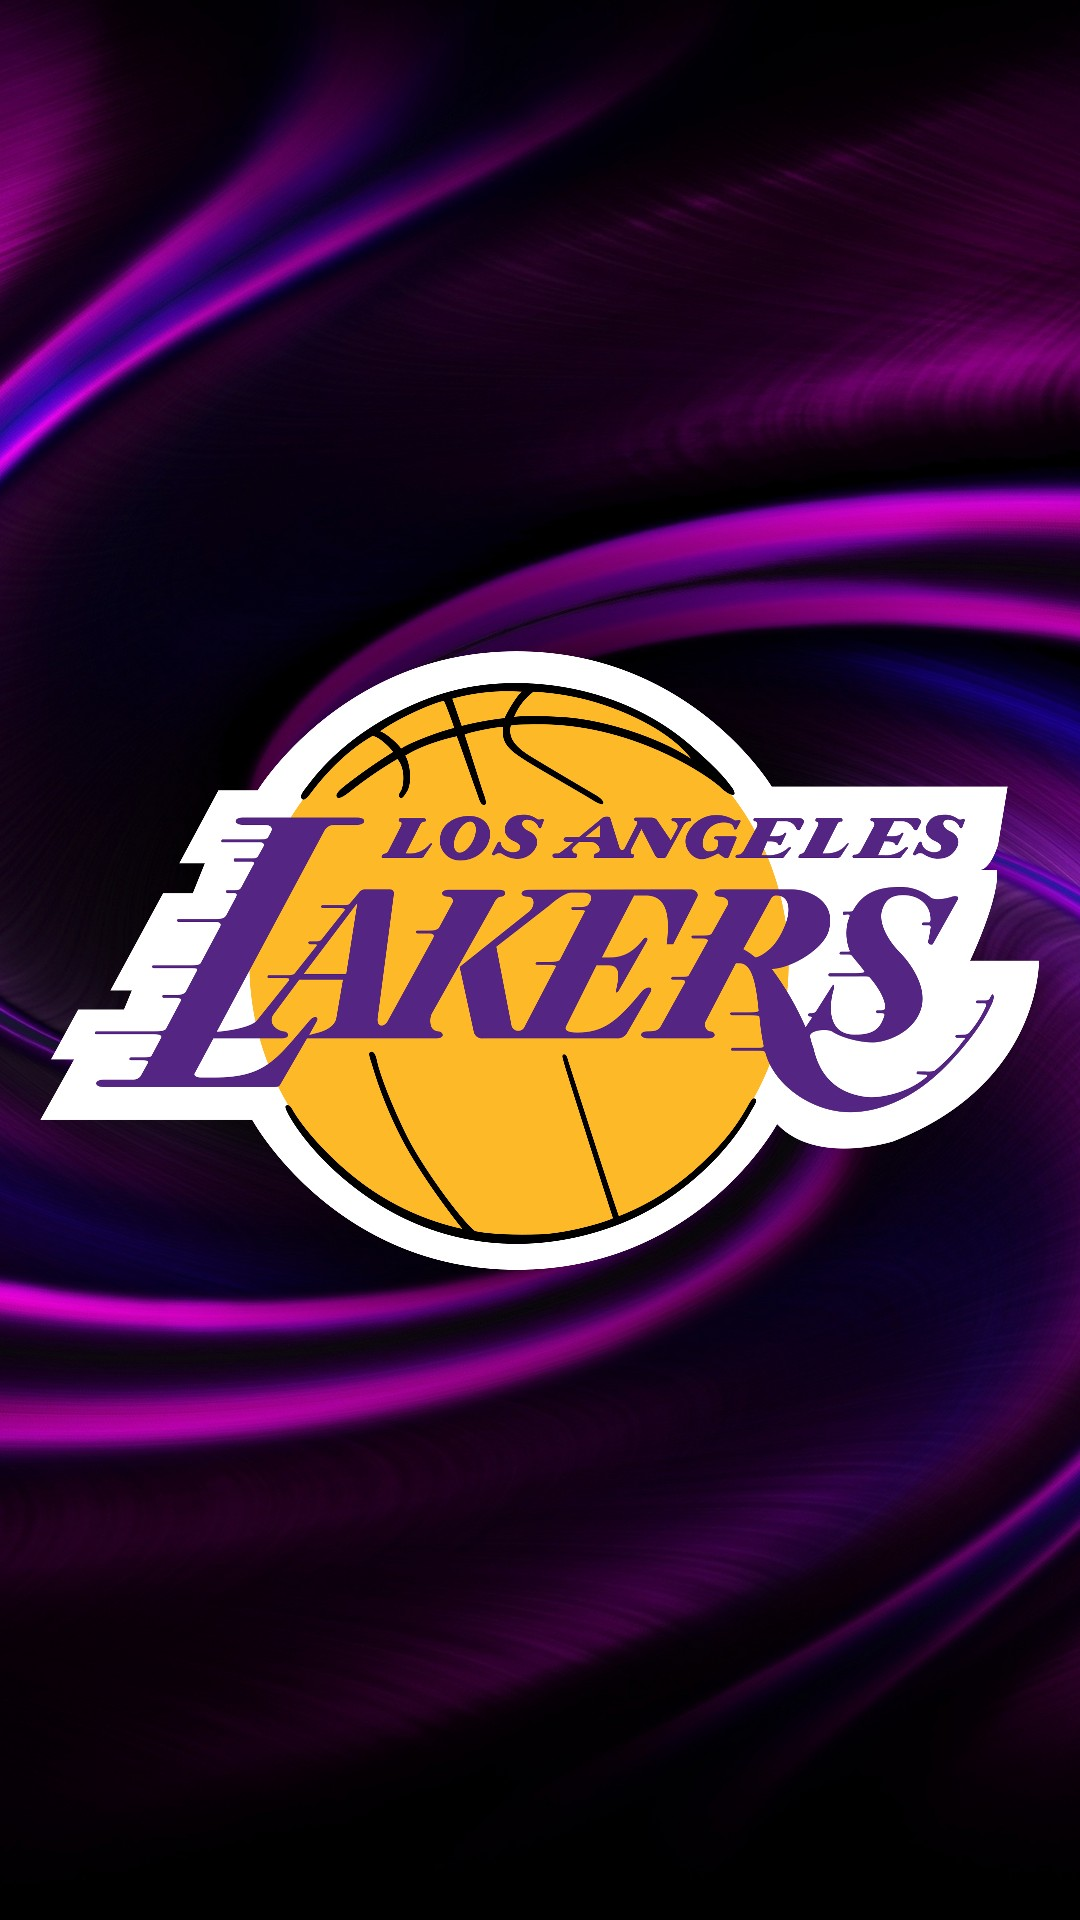 Lakers iPhone Backgrounds   2020 NBA iPhone Wallpaper 1080x1920